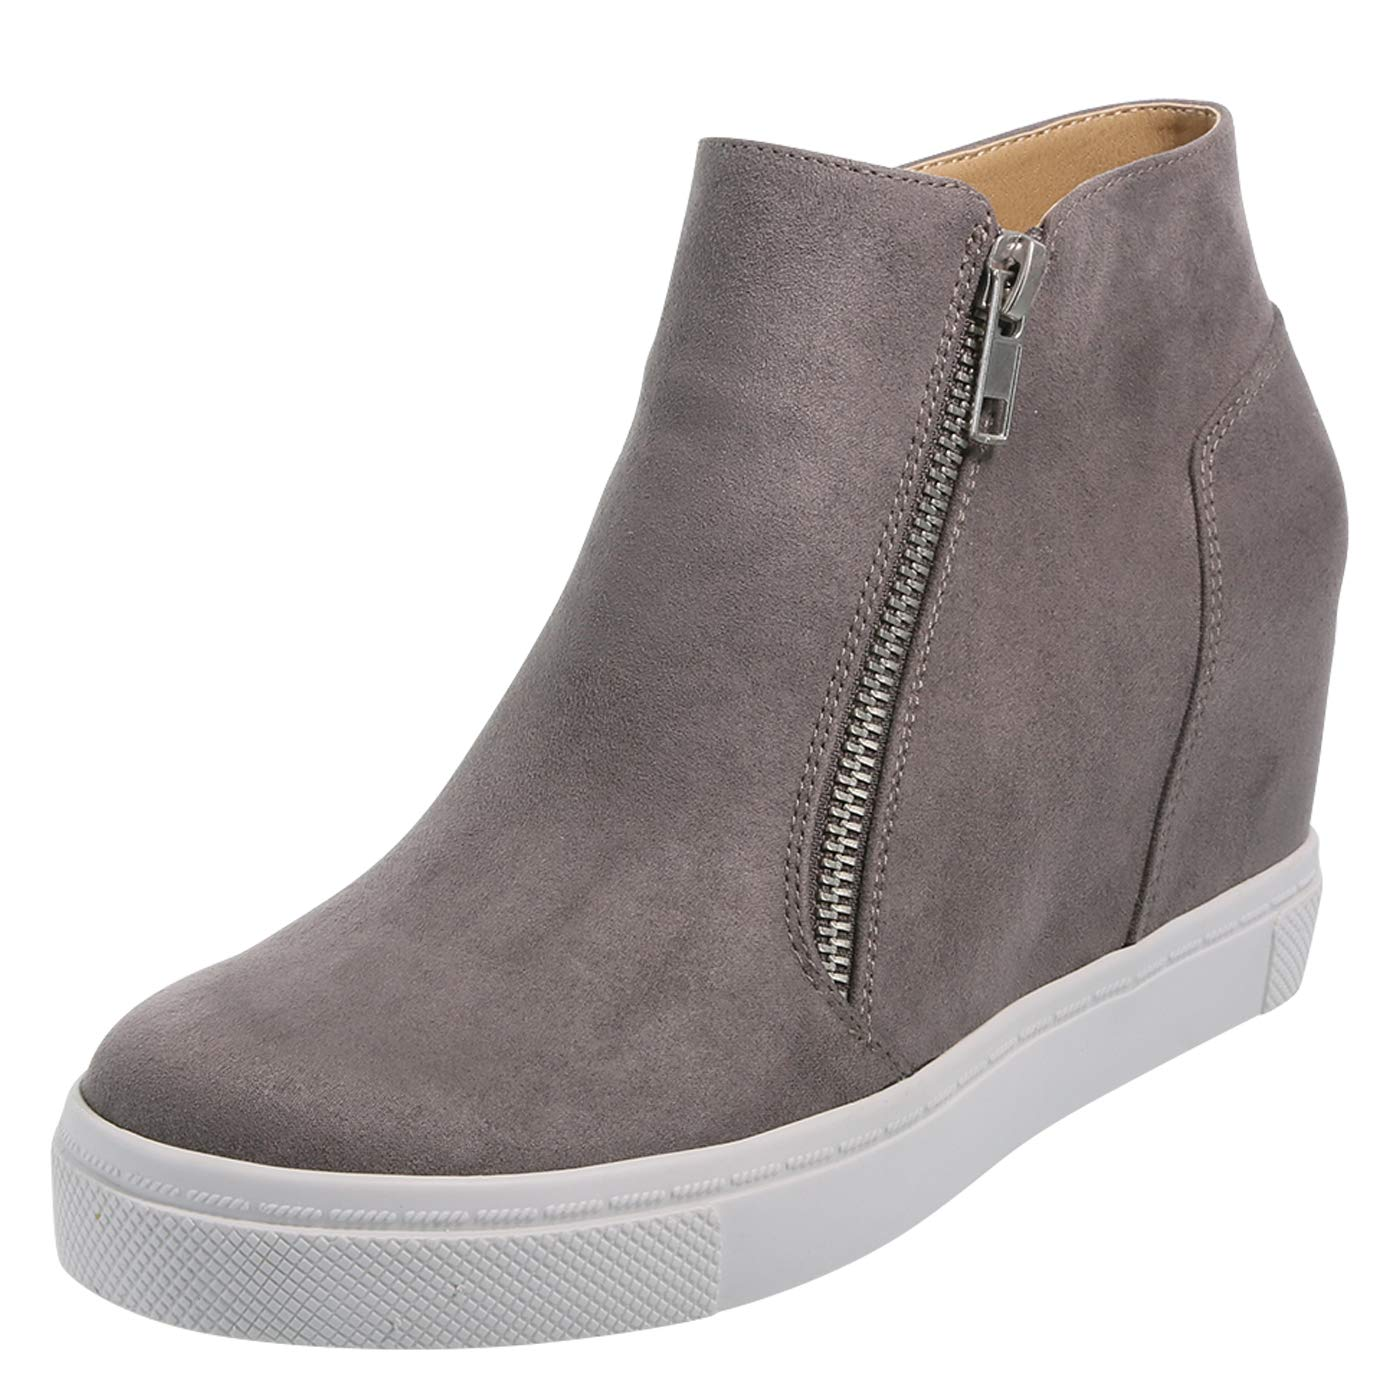 9df4843e23e Brash Grey Suede Women's Cece Hidden Wedge Casual 13 Regular ...